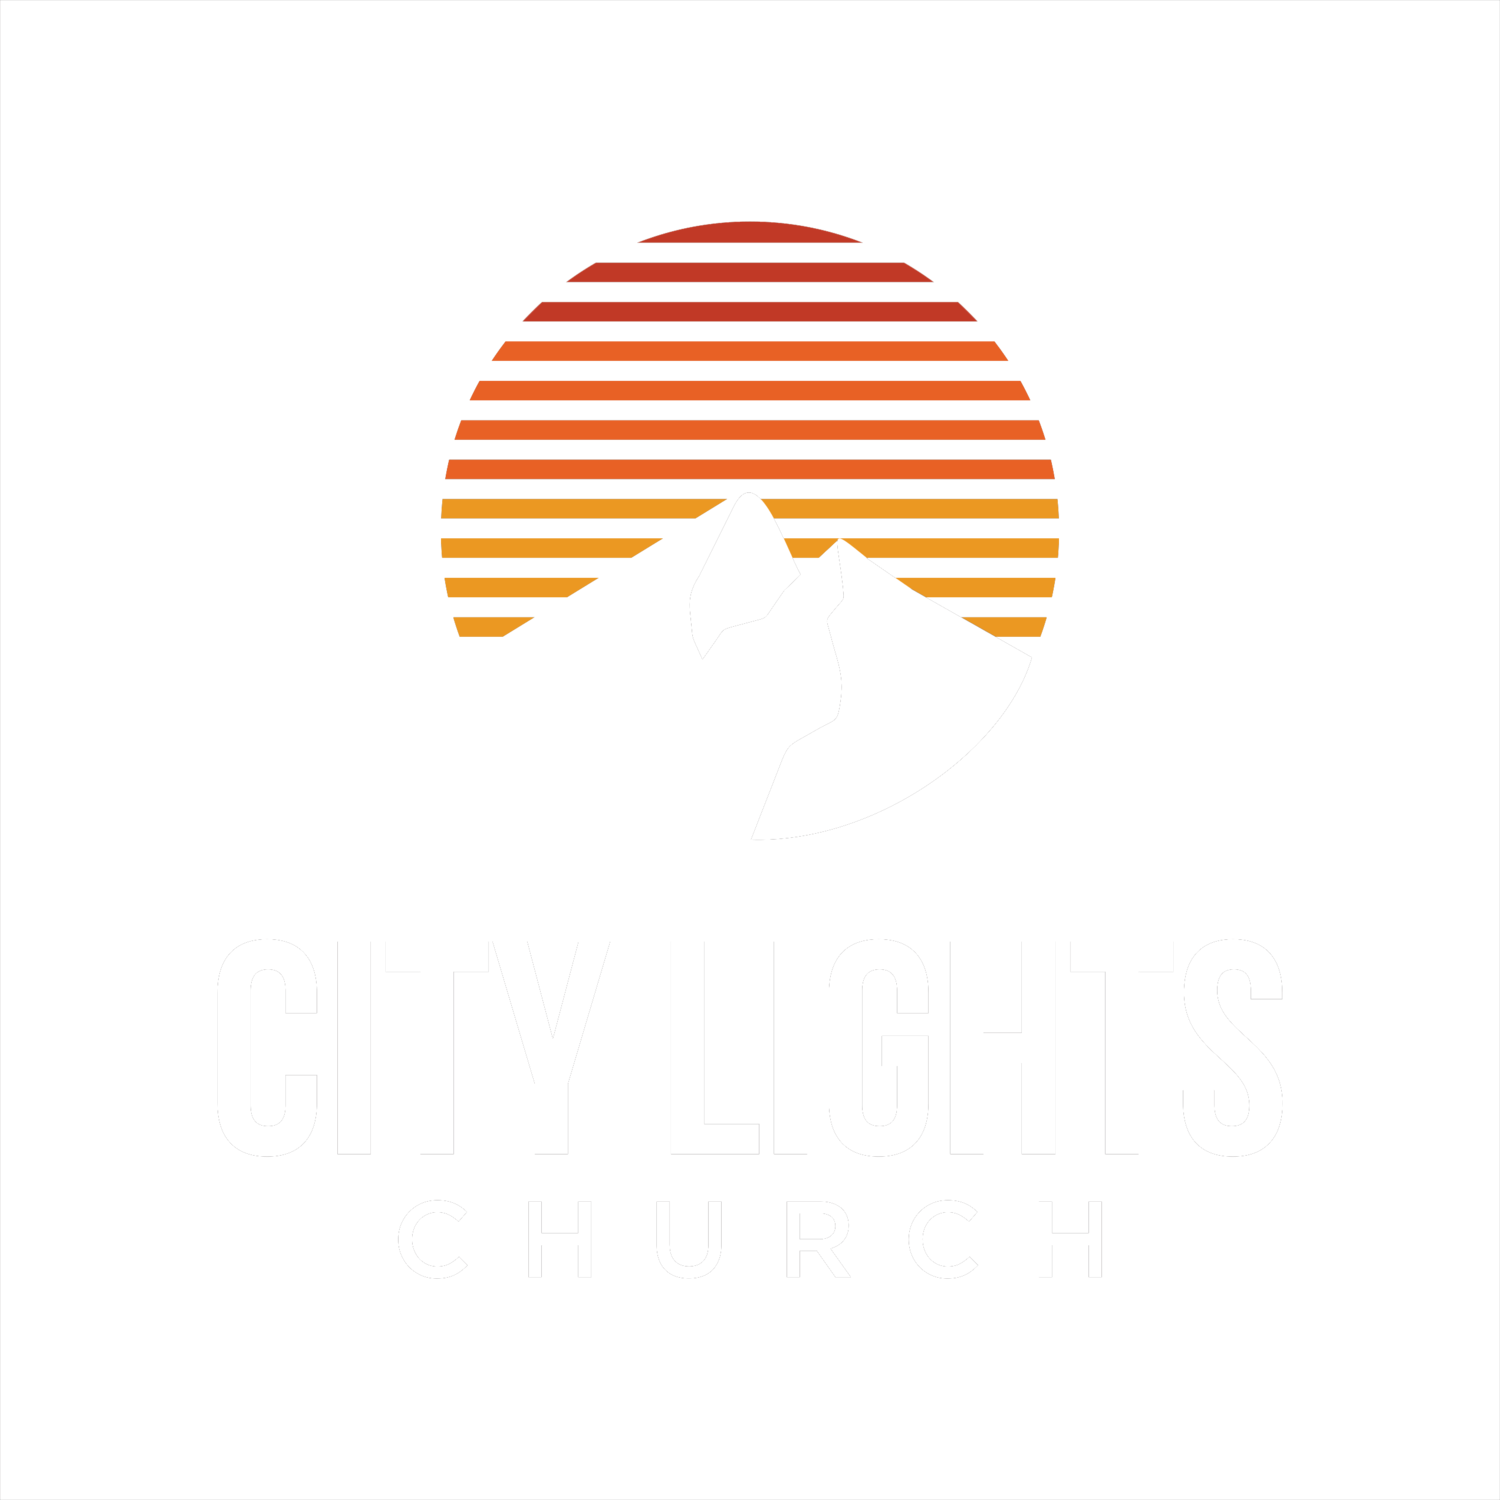 City Lights Church